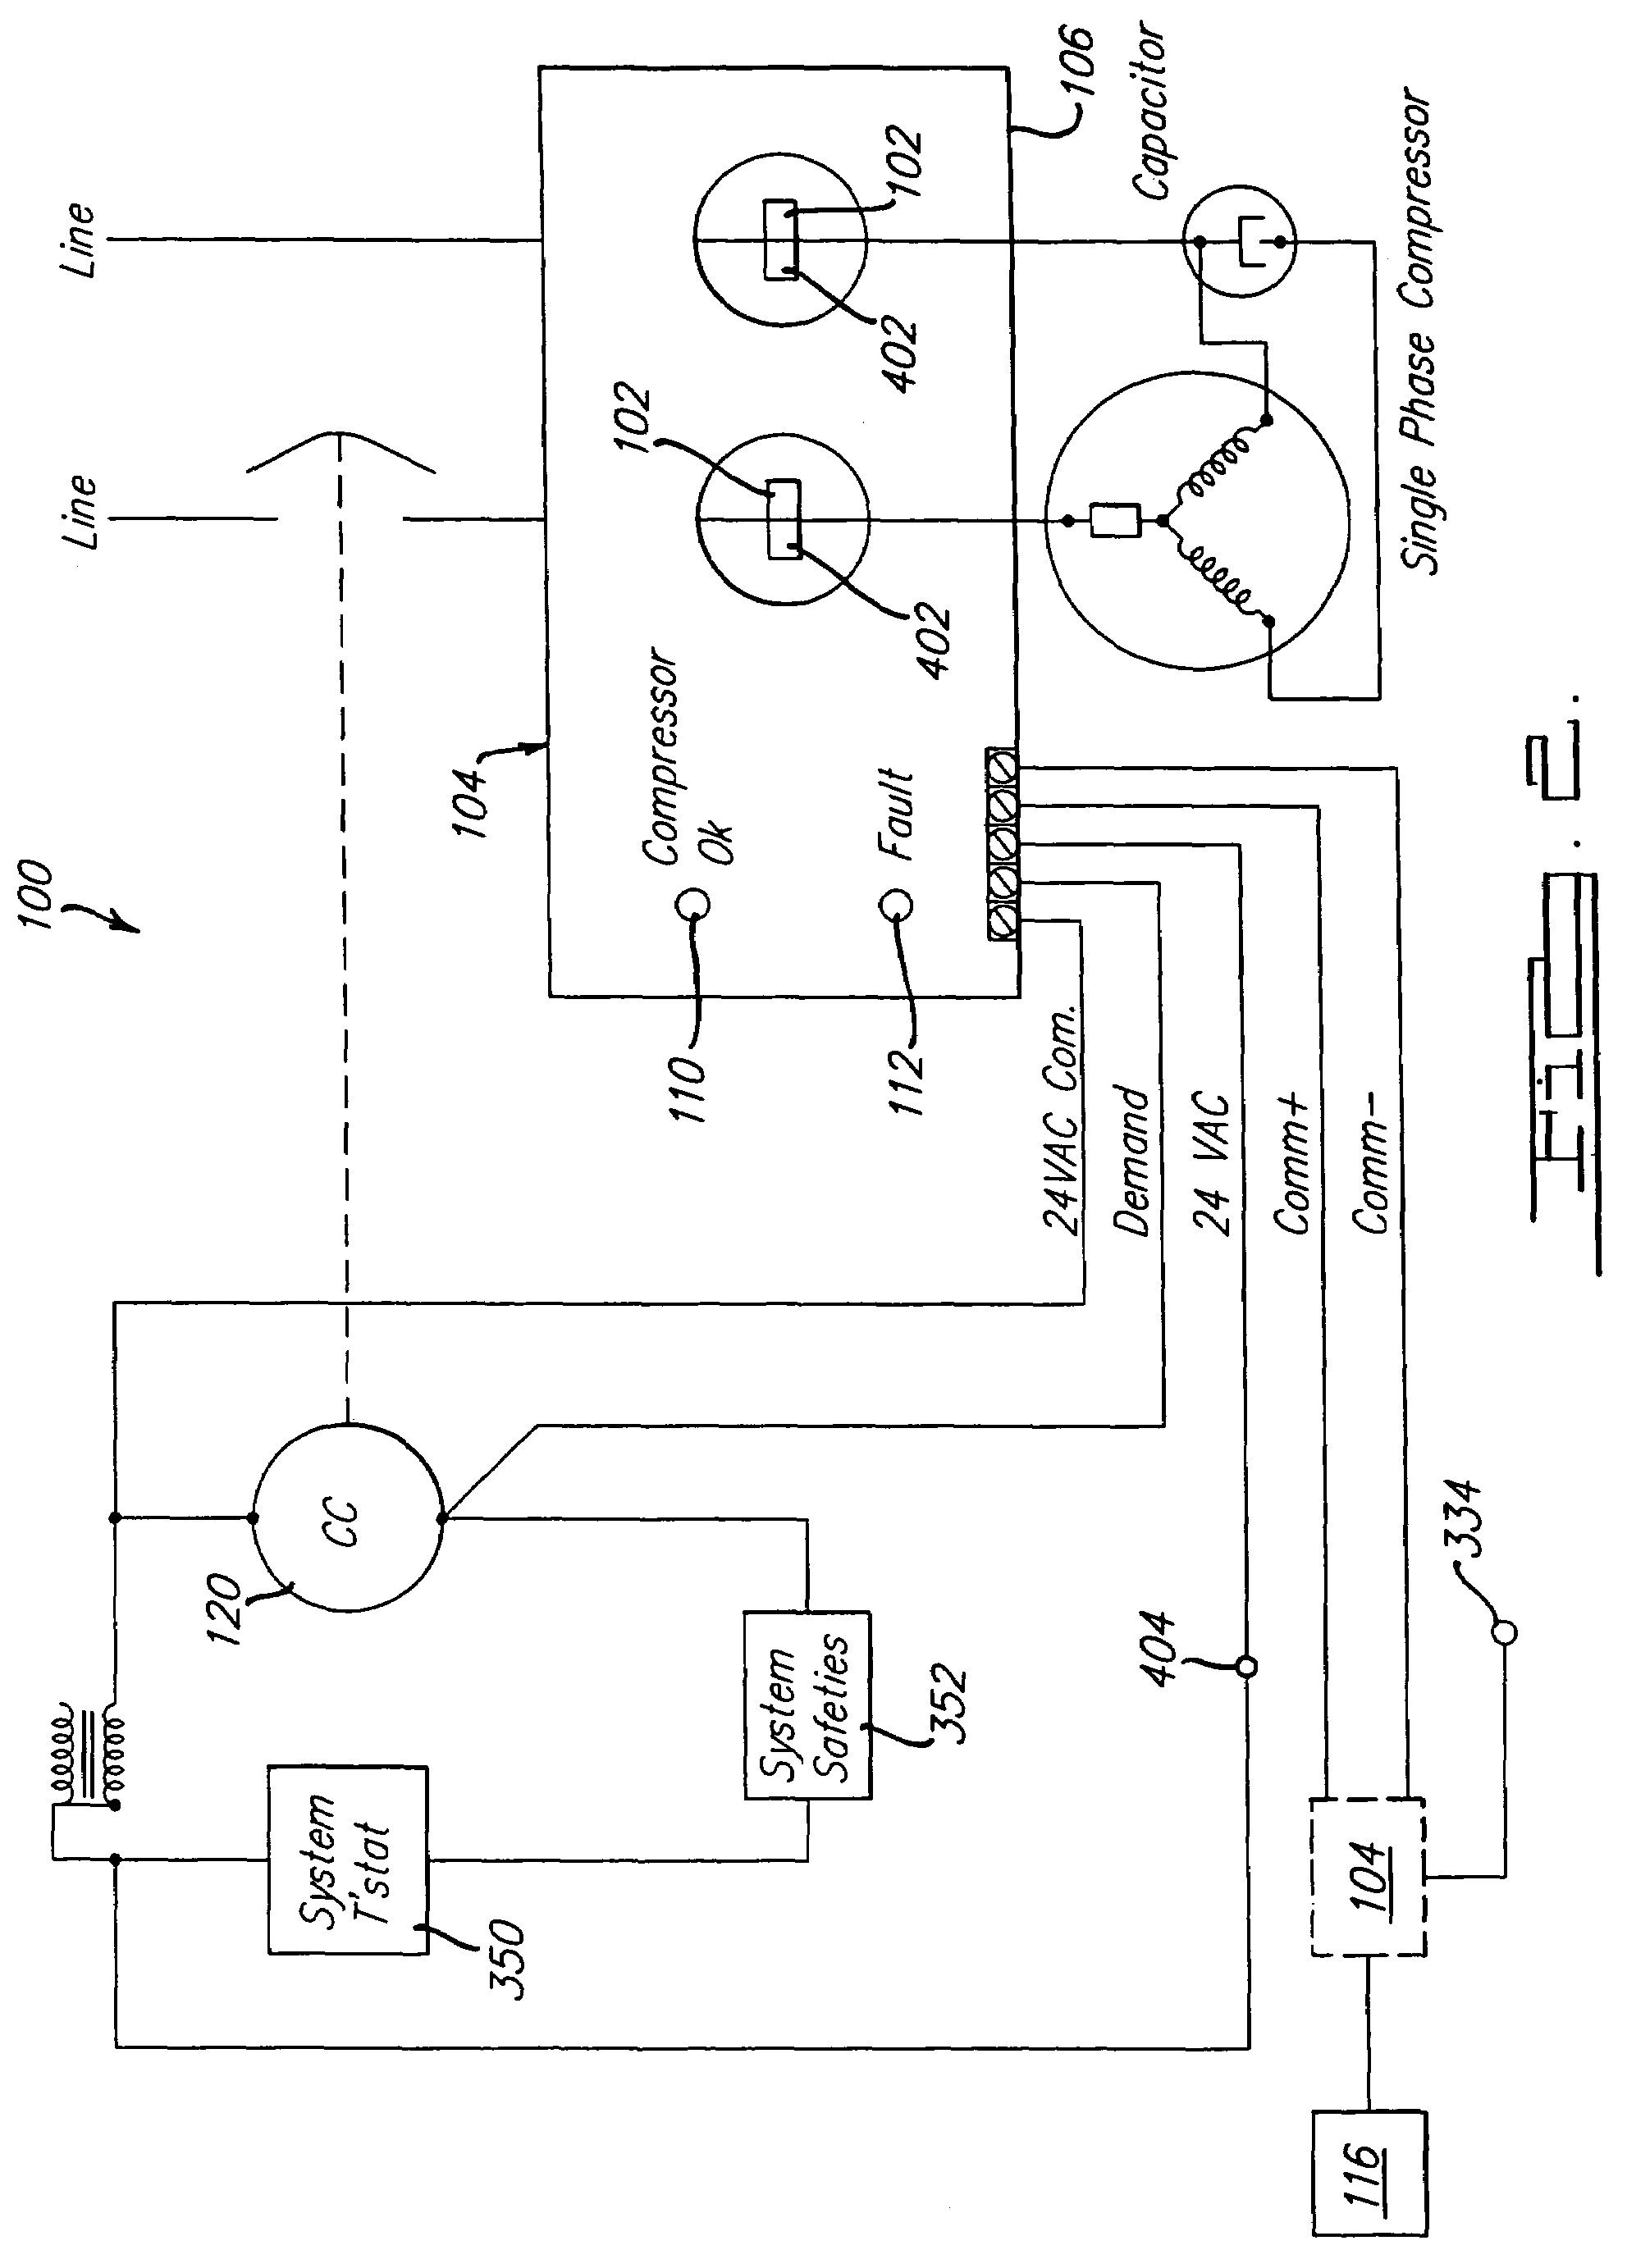 Old Emerson Electric Motor Wiring Diagram